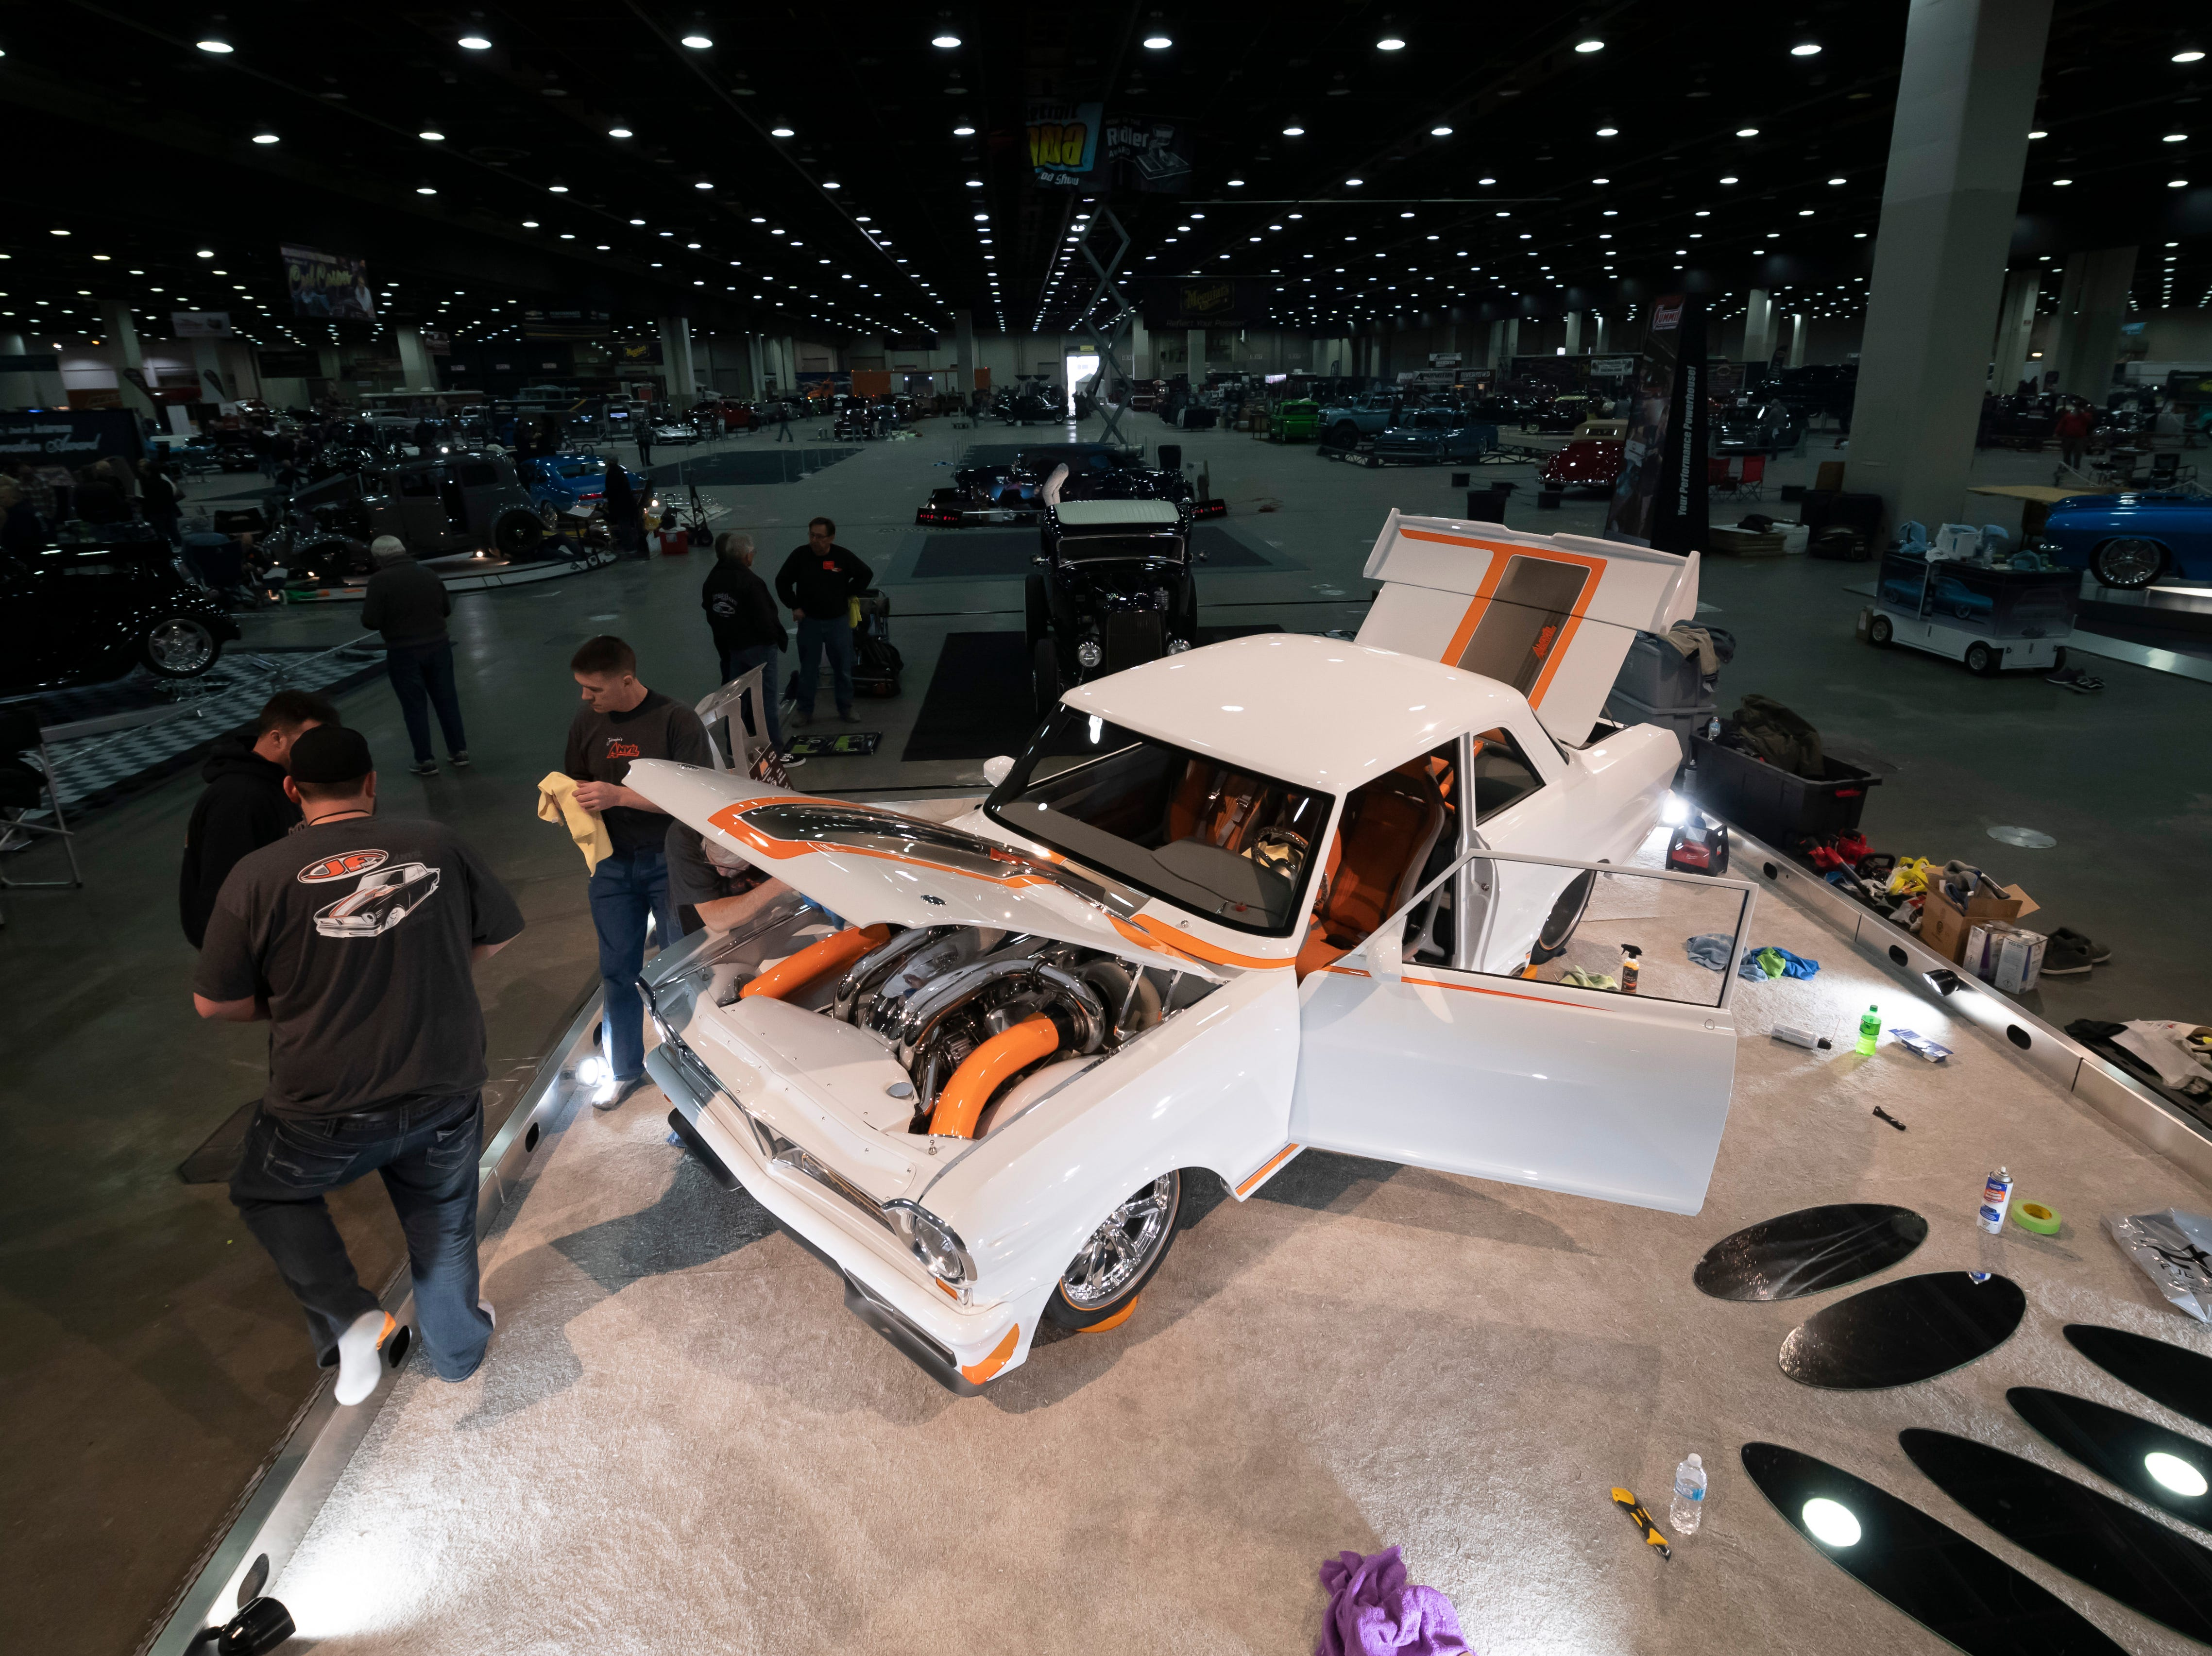 A 1964 Pontiac Acadian, owned by Danny, Sandy, and Cody Jadresko, is prepared for display during set-up day at Detroit Autorama auto show at Cobo Center.